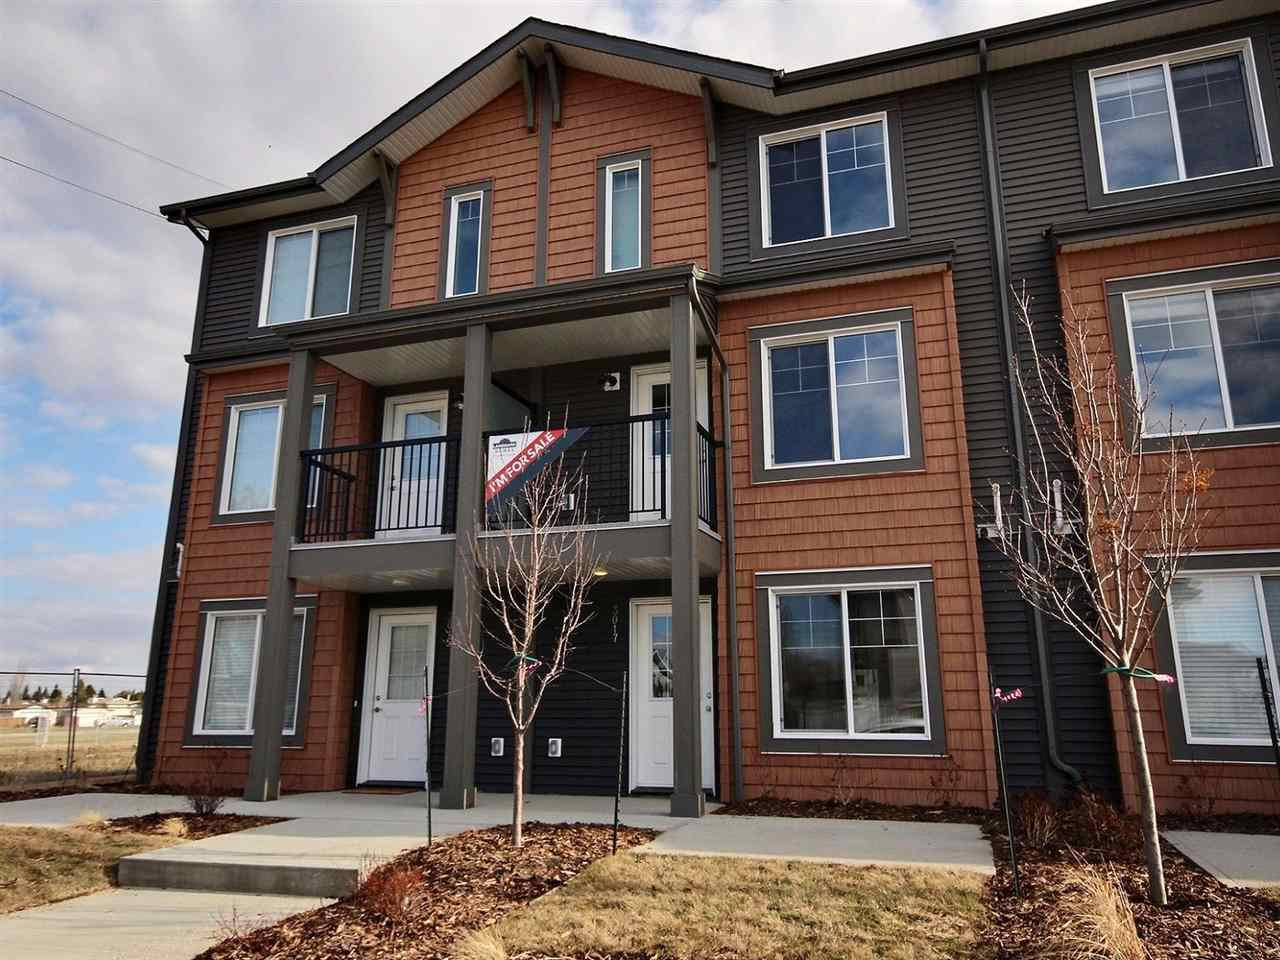 Brand new Townhome located in a mature neighbourhood backing onto a park & school. This open concept townhome features a Quartz kitchen countertop, Laminate throughout the main floor, ceramic tile in entry way & bathrooms, microwave hood fan, stainless steel appliances, en-suite walk in shower and beautiful large windows. This 1300 Sqft (builder size) double car garage home is a perfect for low maintenance and pet friendly living.